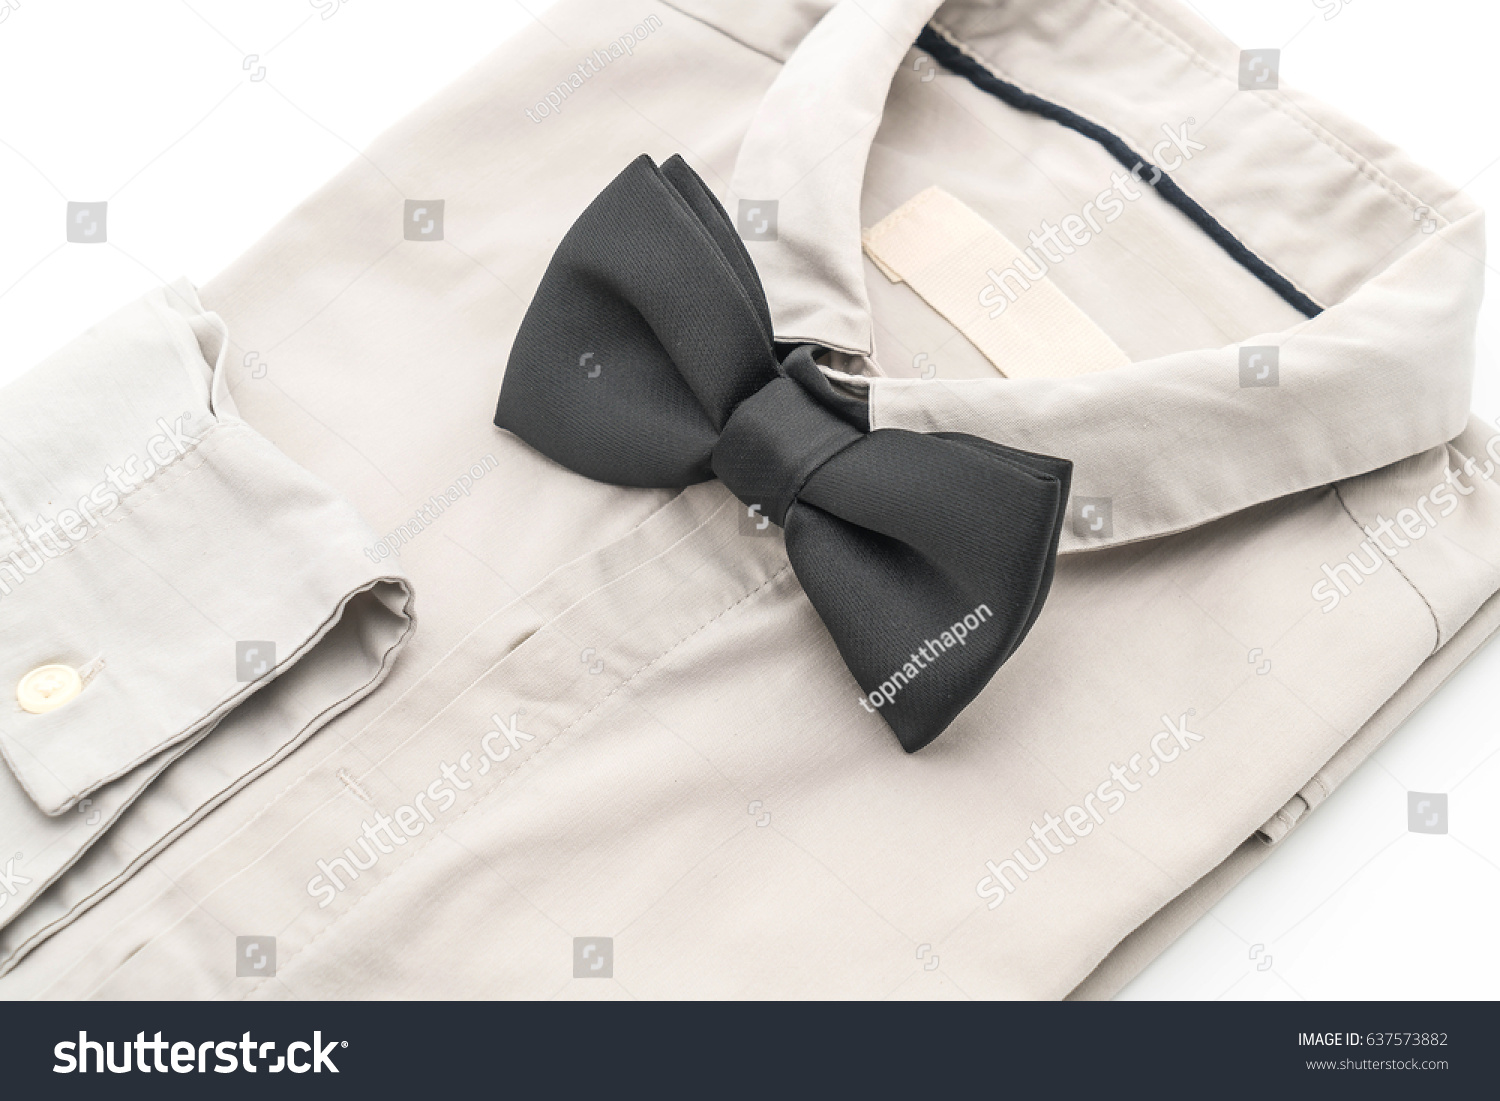 shirt with bow tie on white background #637573882